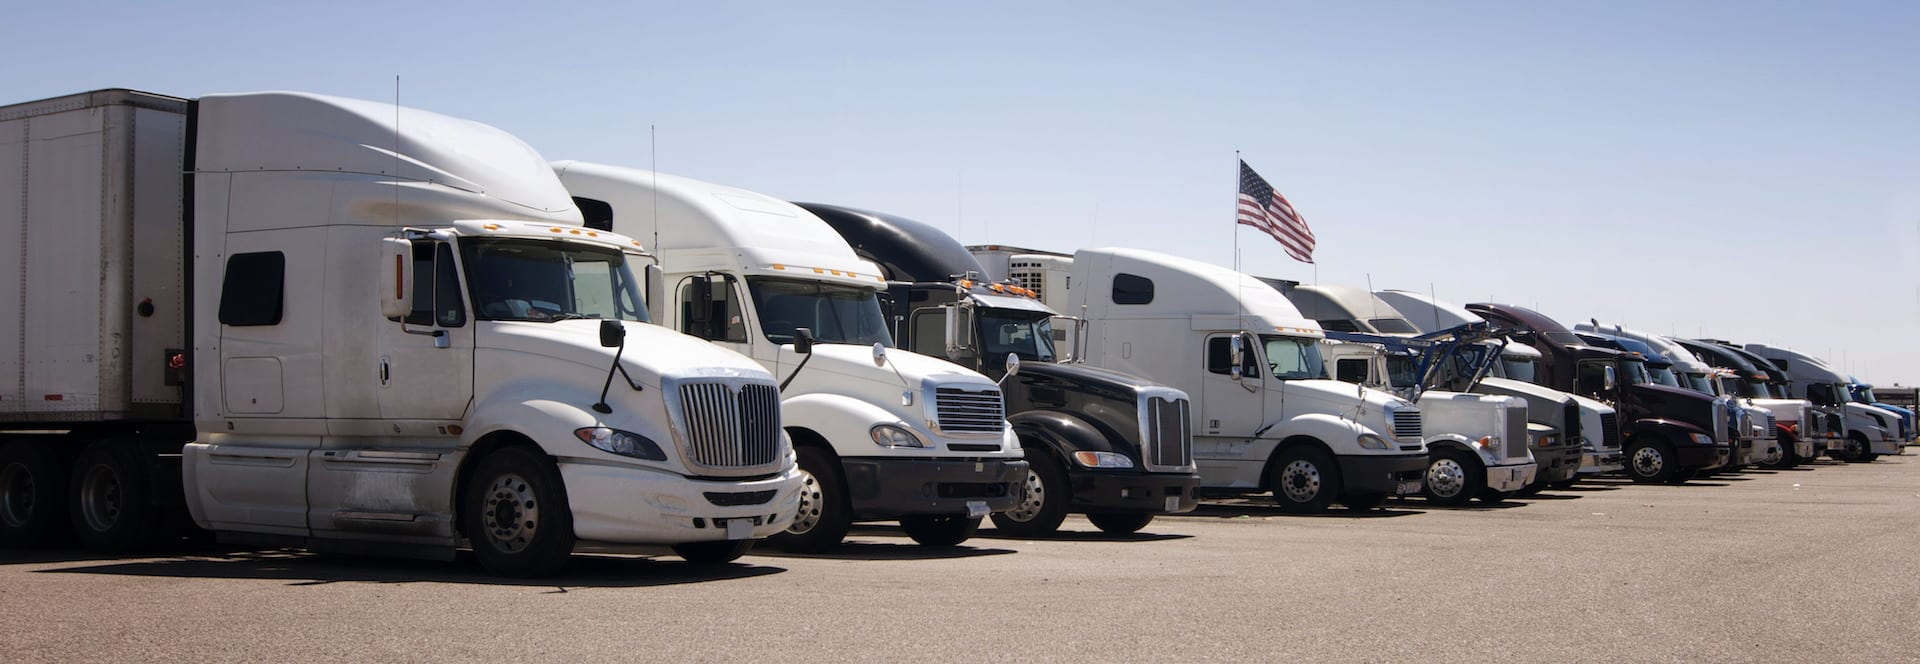 Truck Accidents and Driver Fatigue